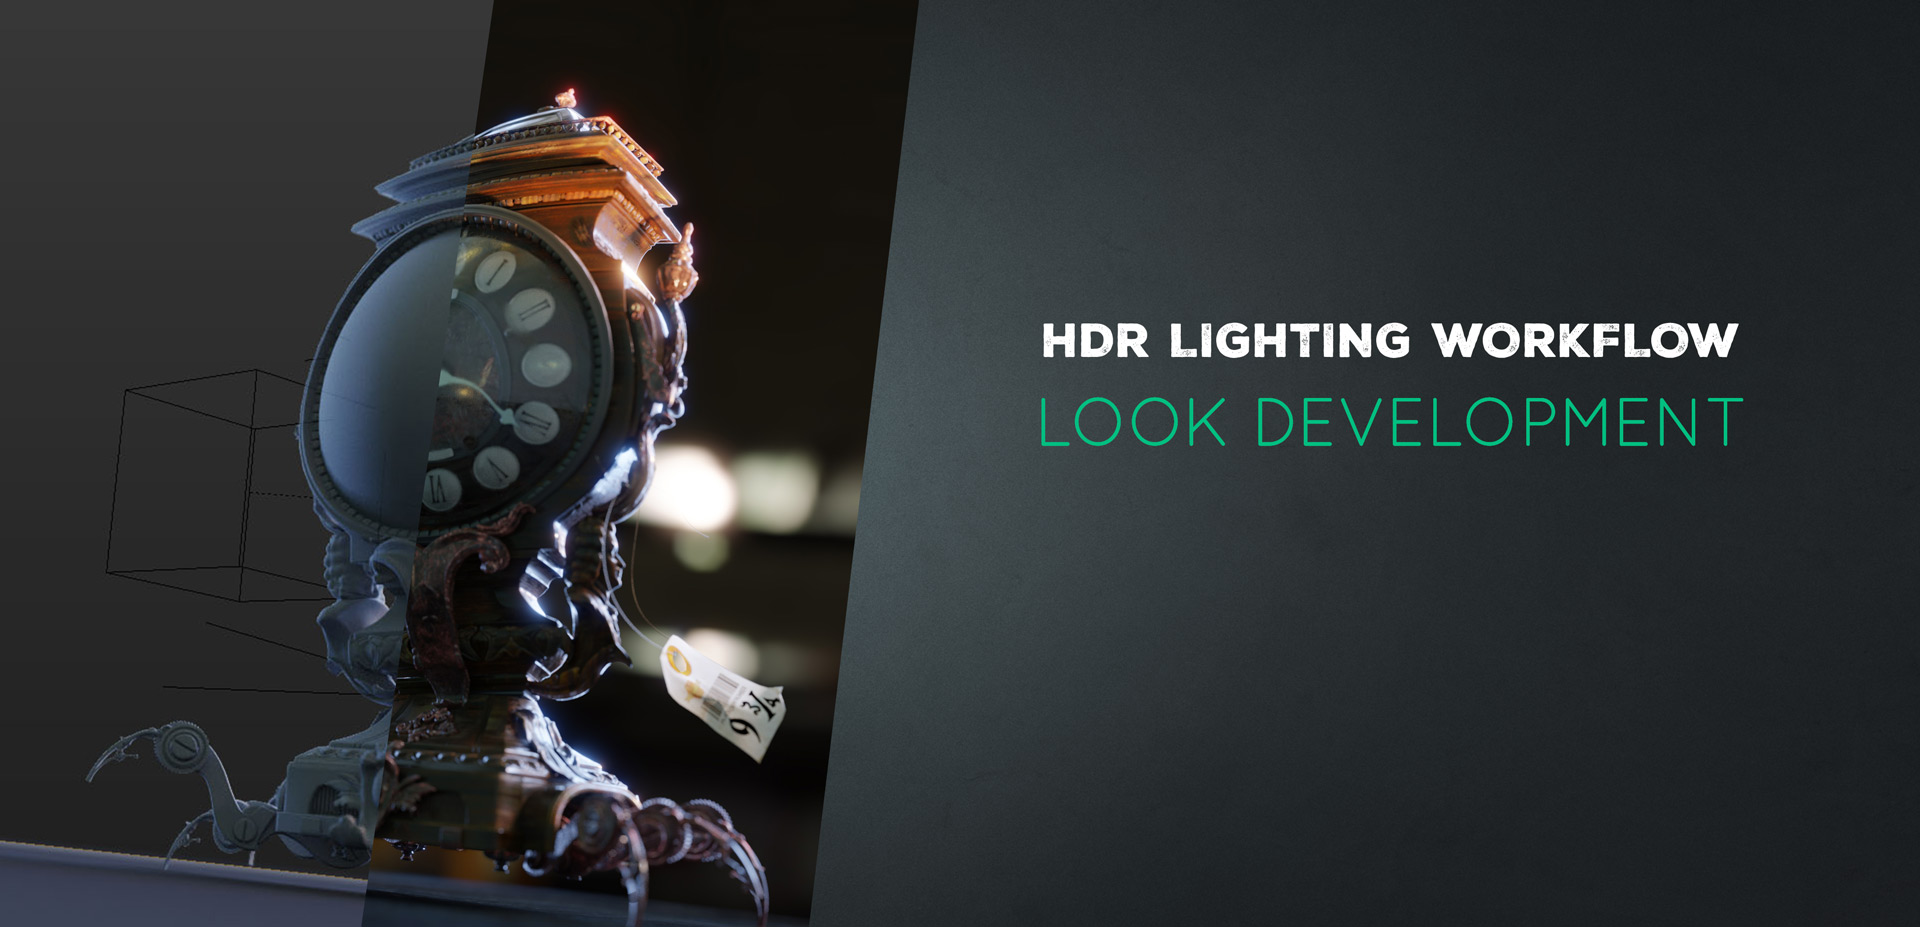 Hdr Lighting Workflow For Blender Look Development 5 7